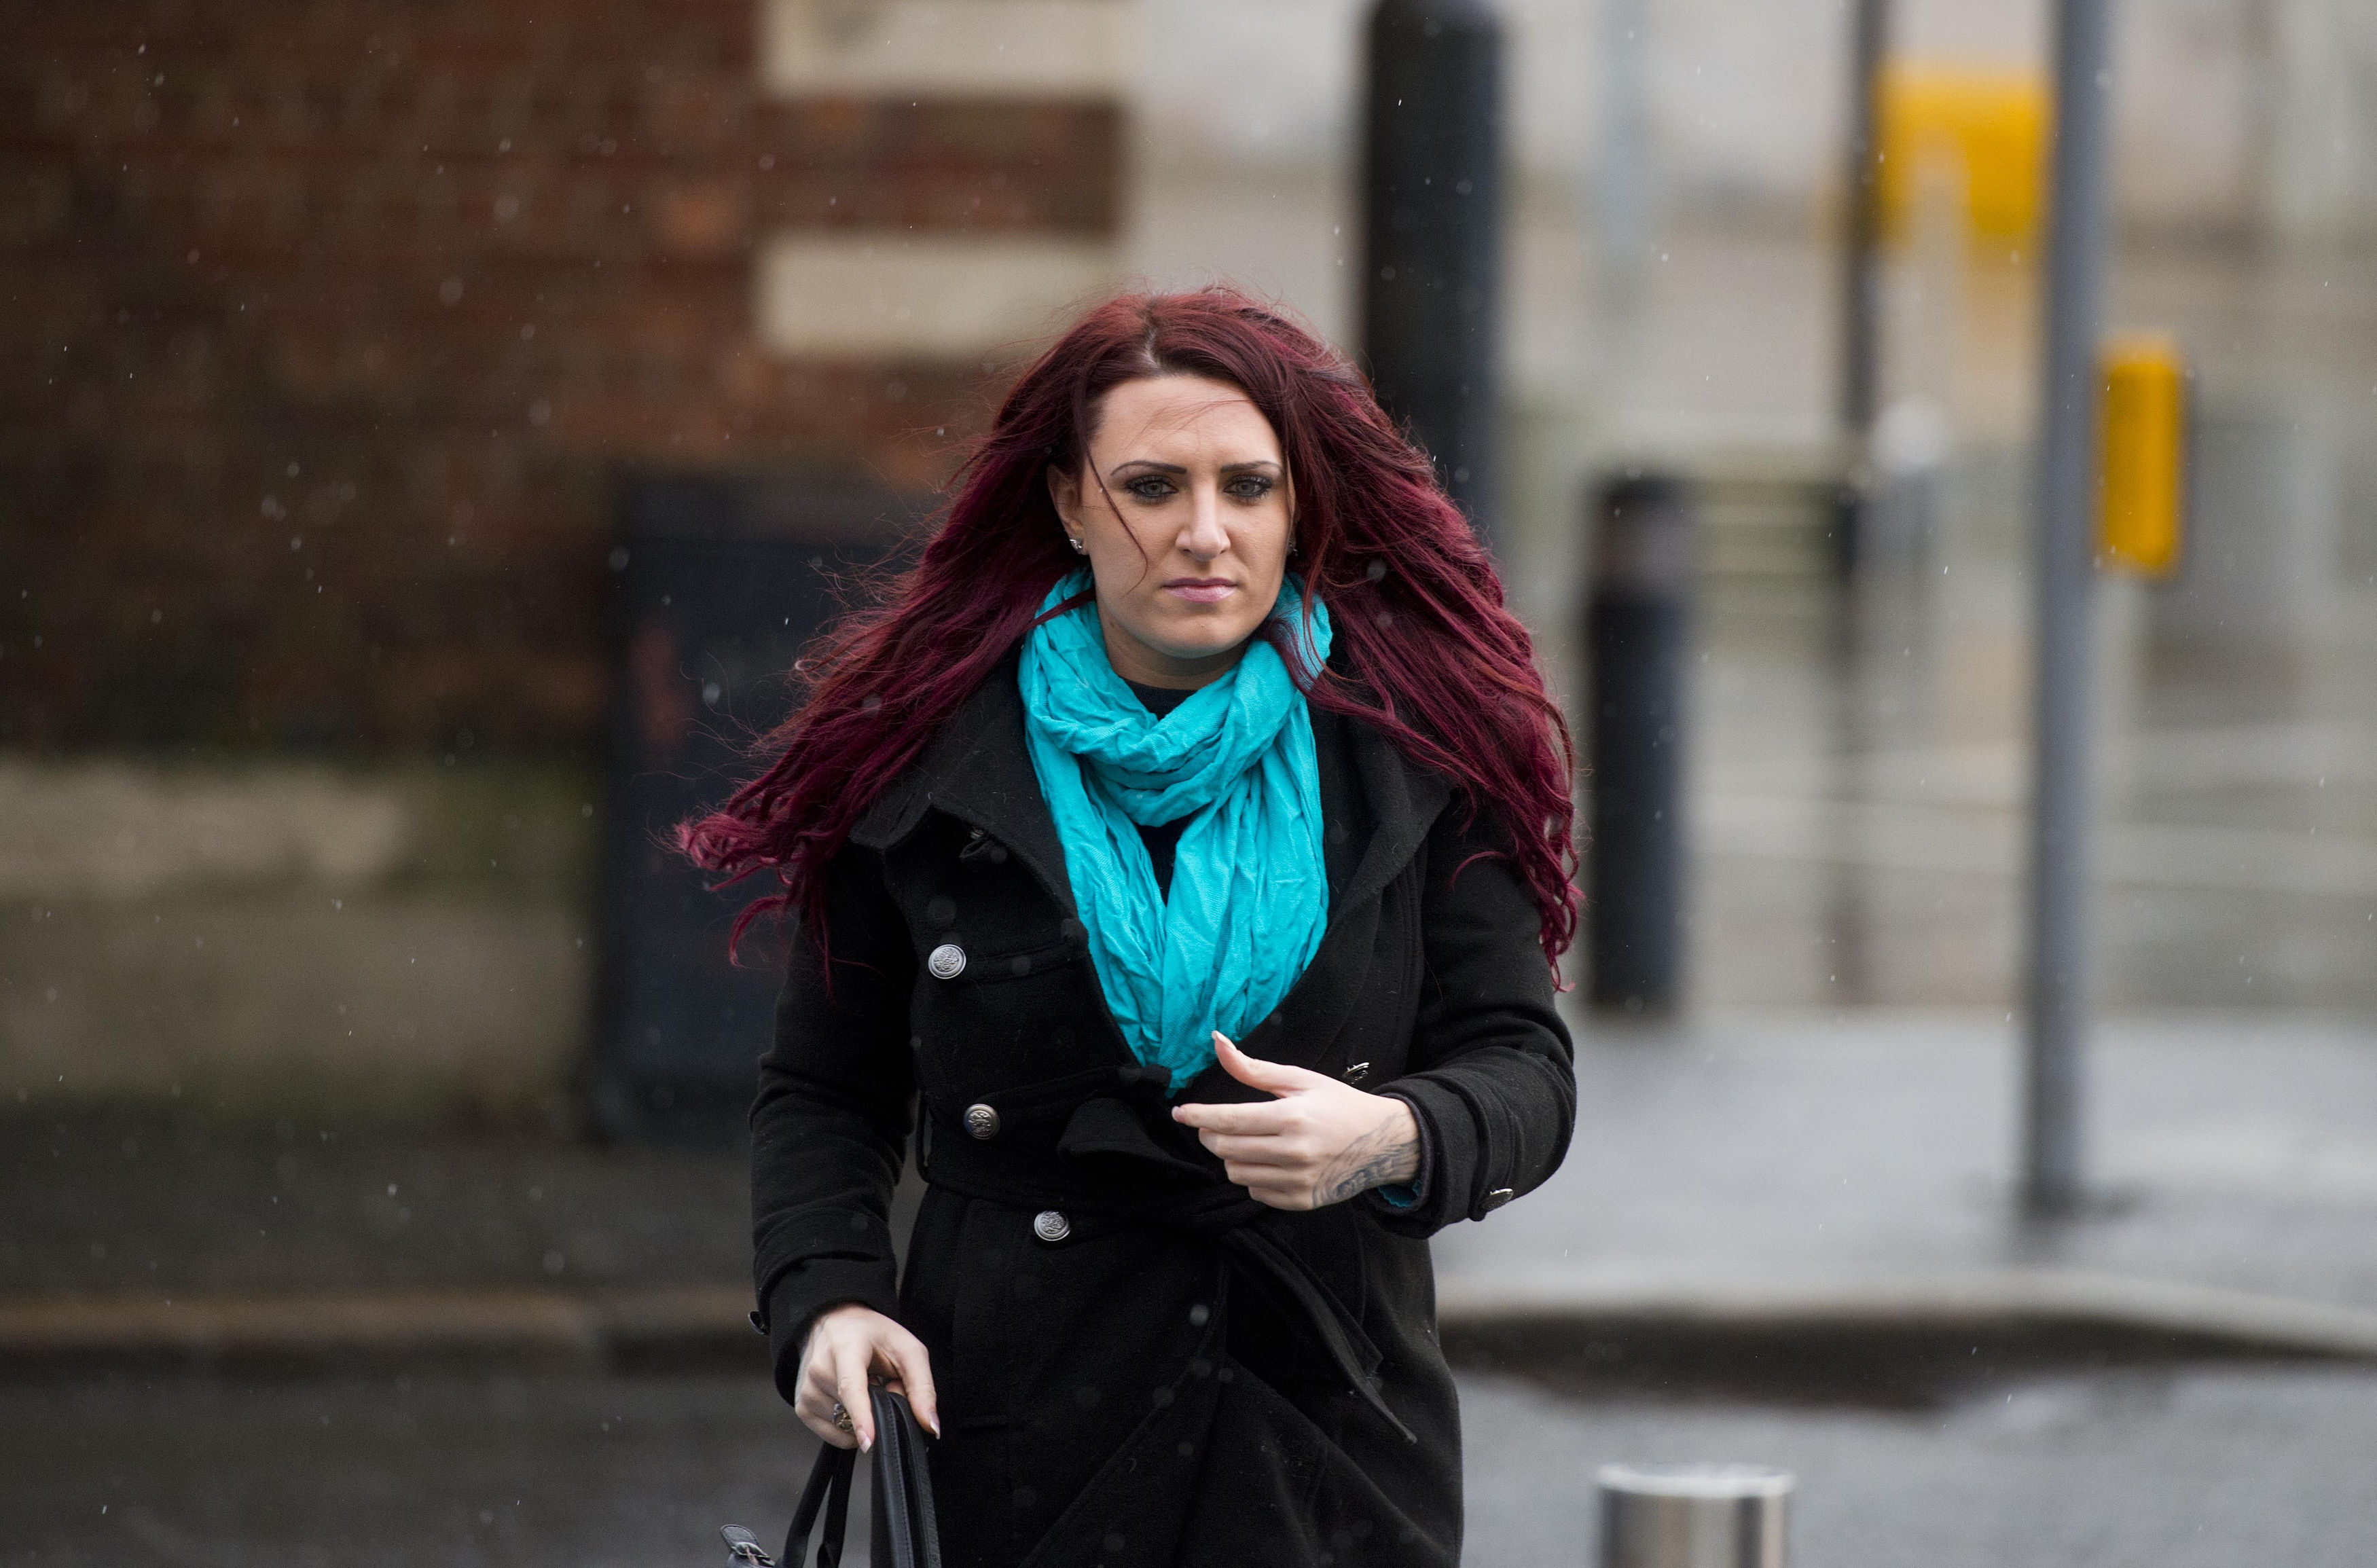 Britain First leader Jayda Fransen reverses her name to beat Twitter ban